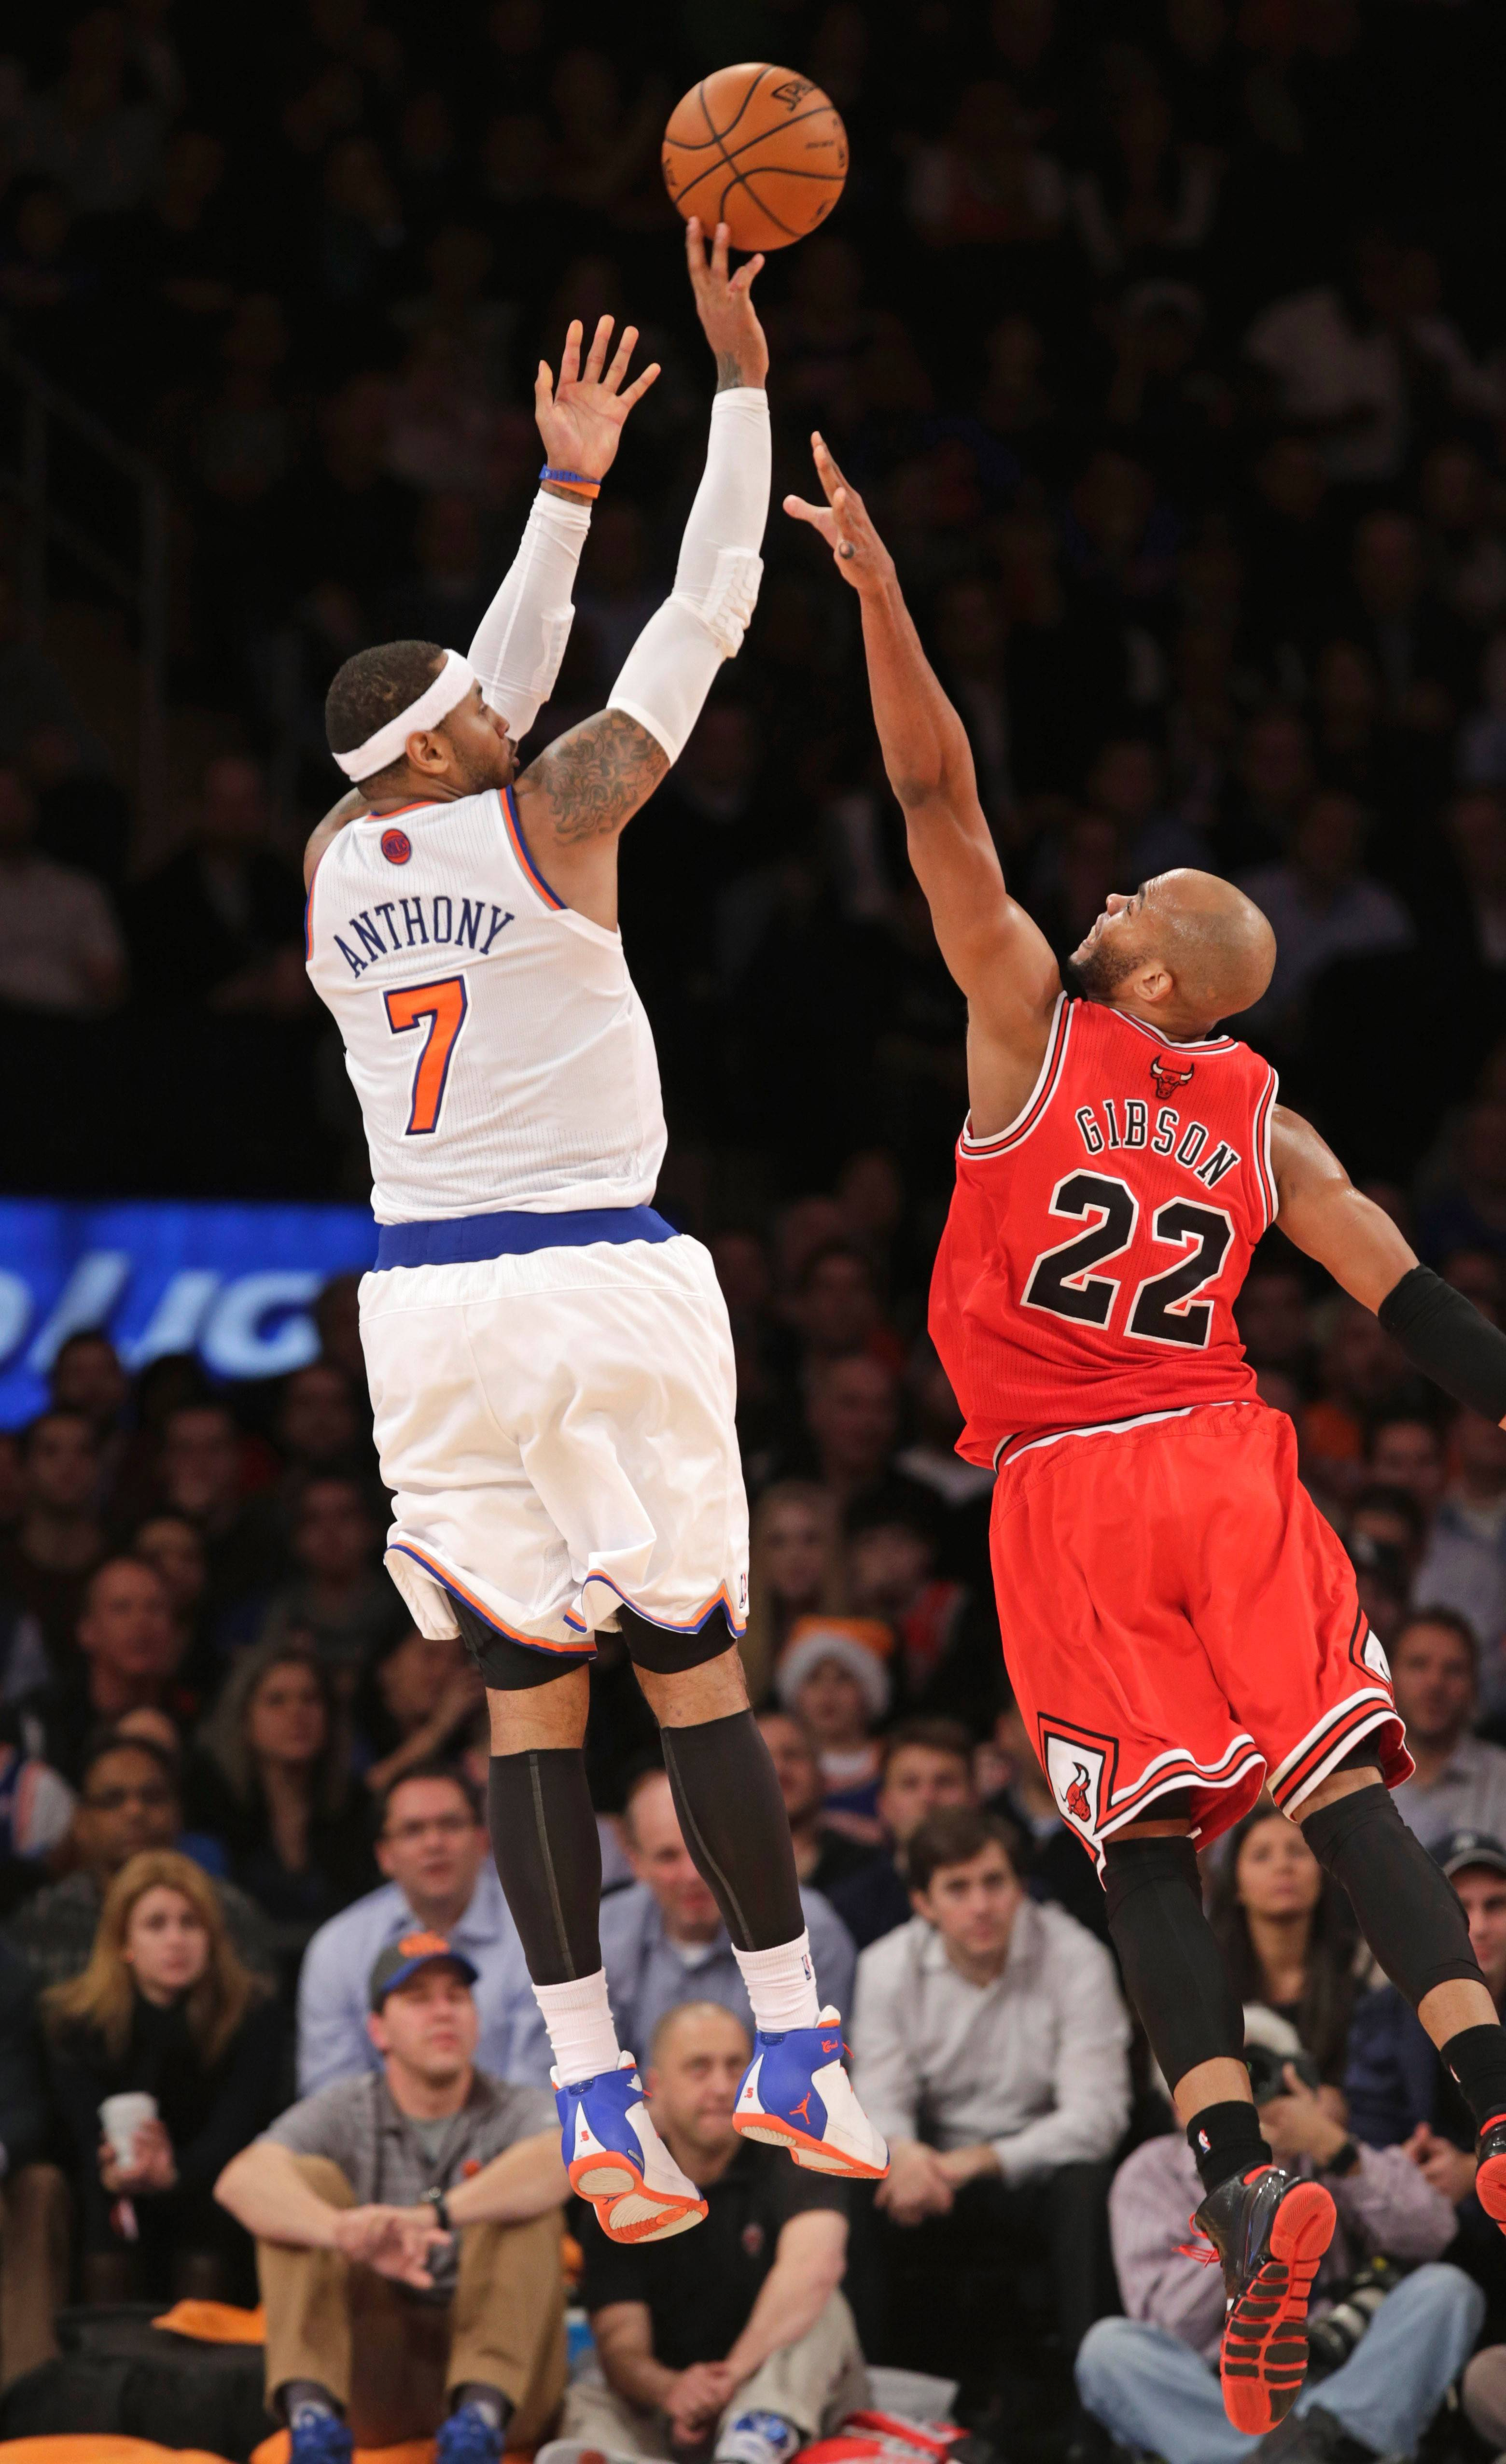 New York Knicks forward Carmelo Anthony (7) shoots over Chicago Bulls forward Taj Gibson (22) in the second half of their NBA basketball game at Madison Square Garden in New York, Wednesday, Dec. 11, 2013. Anthony scored 30 points as the Knicks defeated the Bulls 83-78.